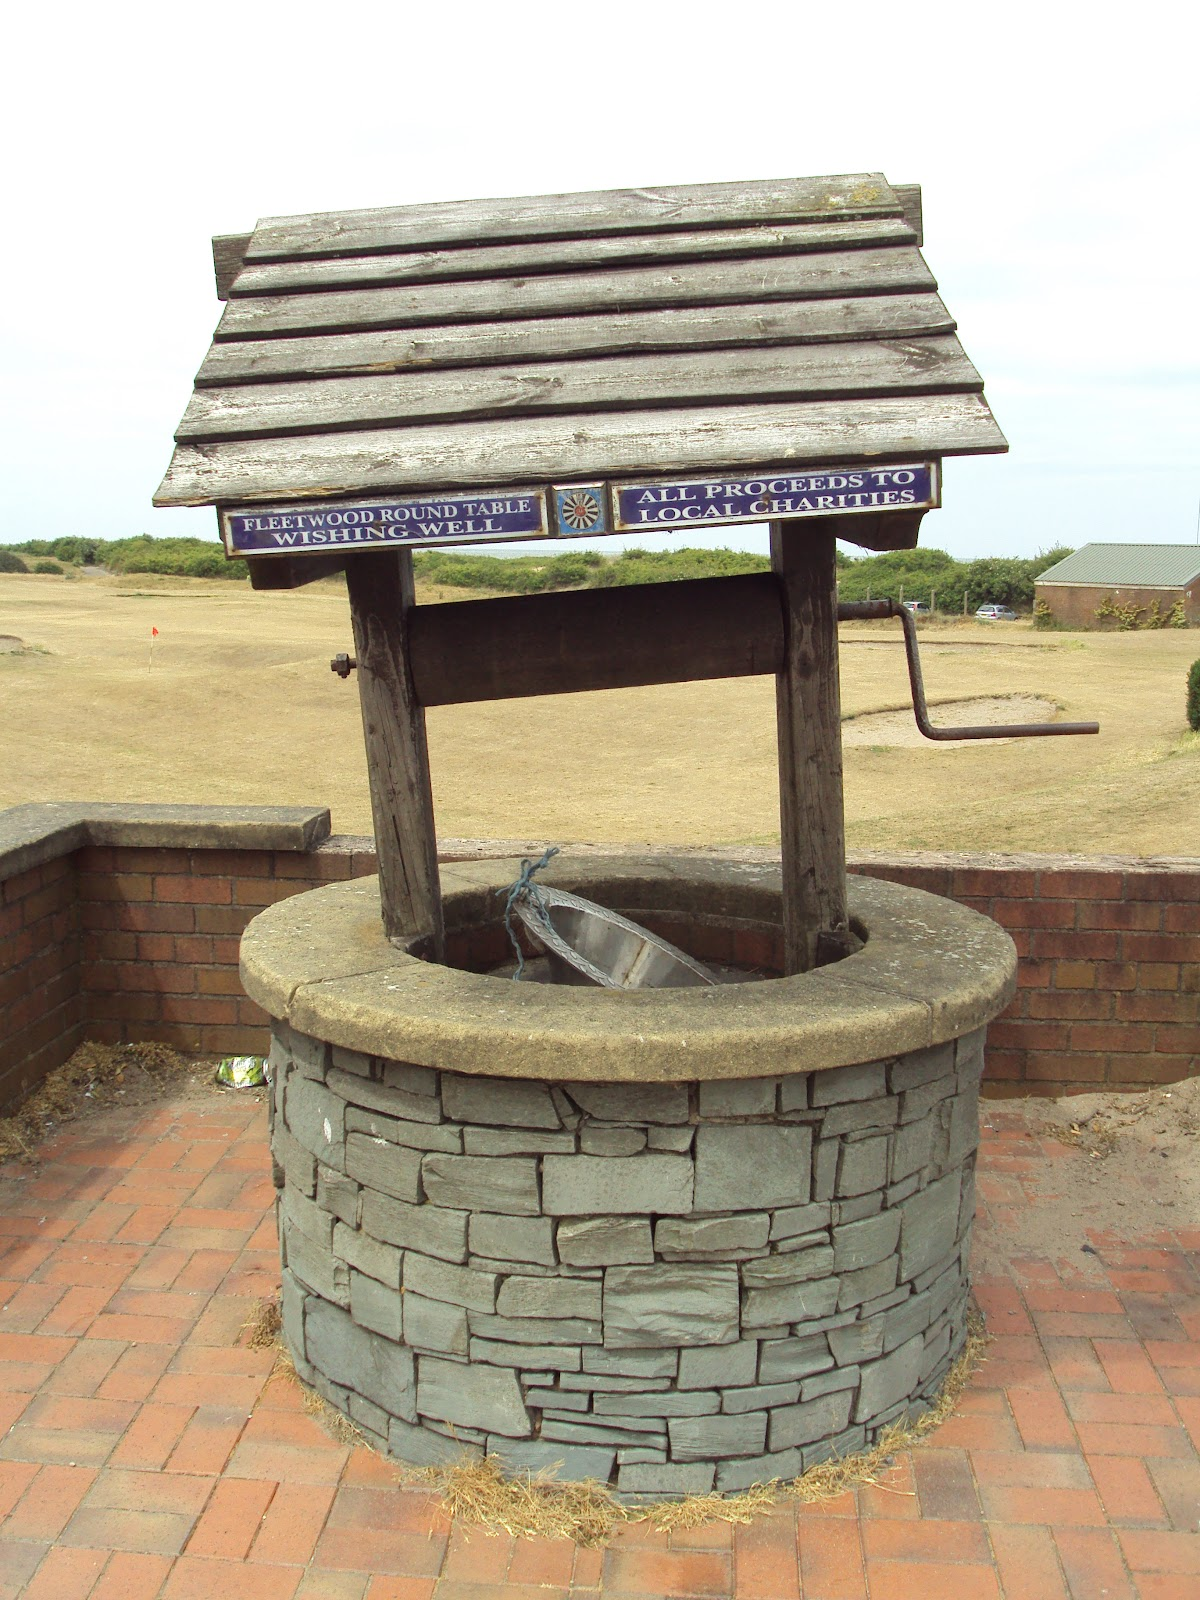 File:Fleetwood round table wishing well - DSC06564.JPG - Wikimedia ...